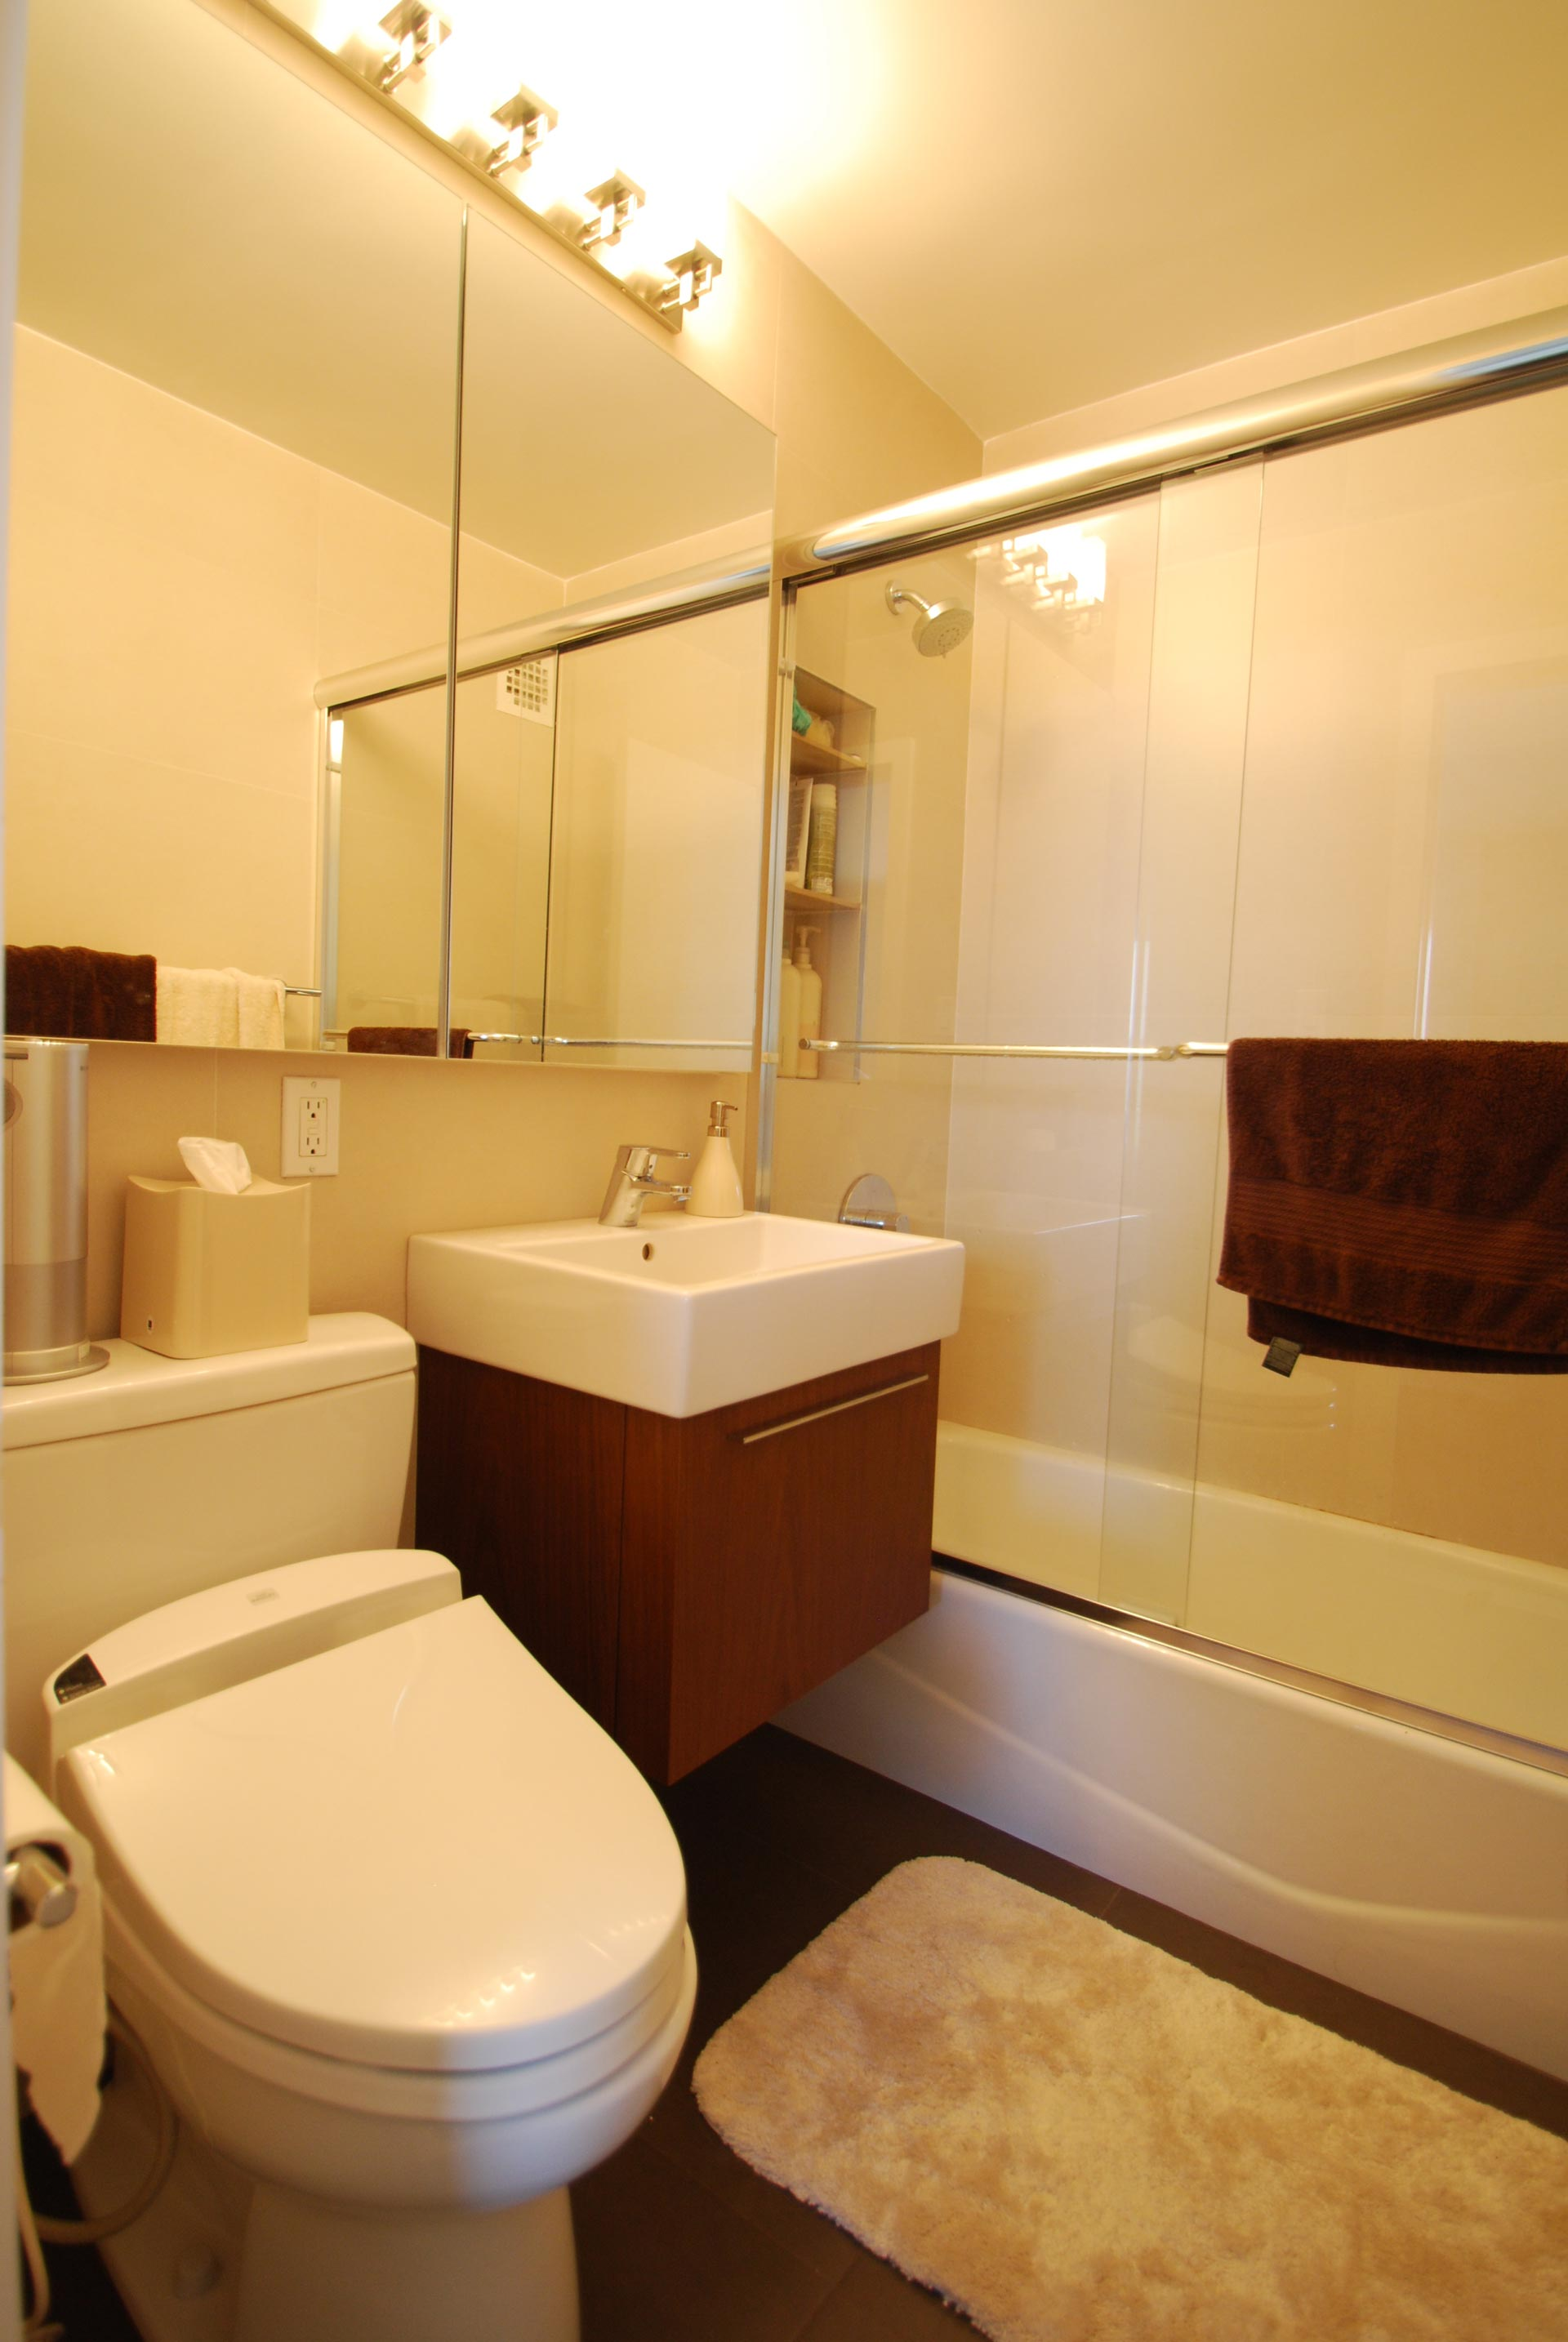 Bathroom (West End)